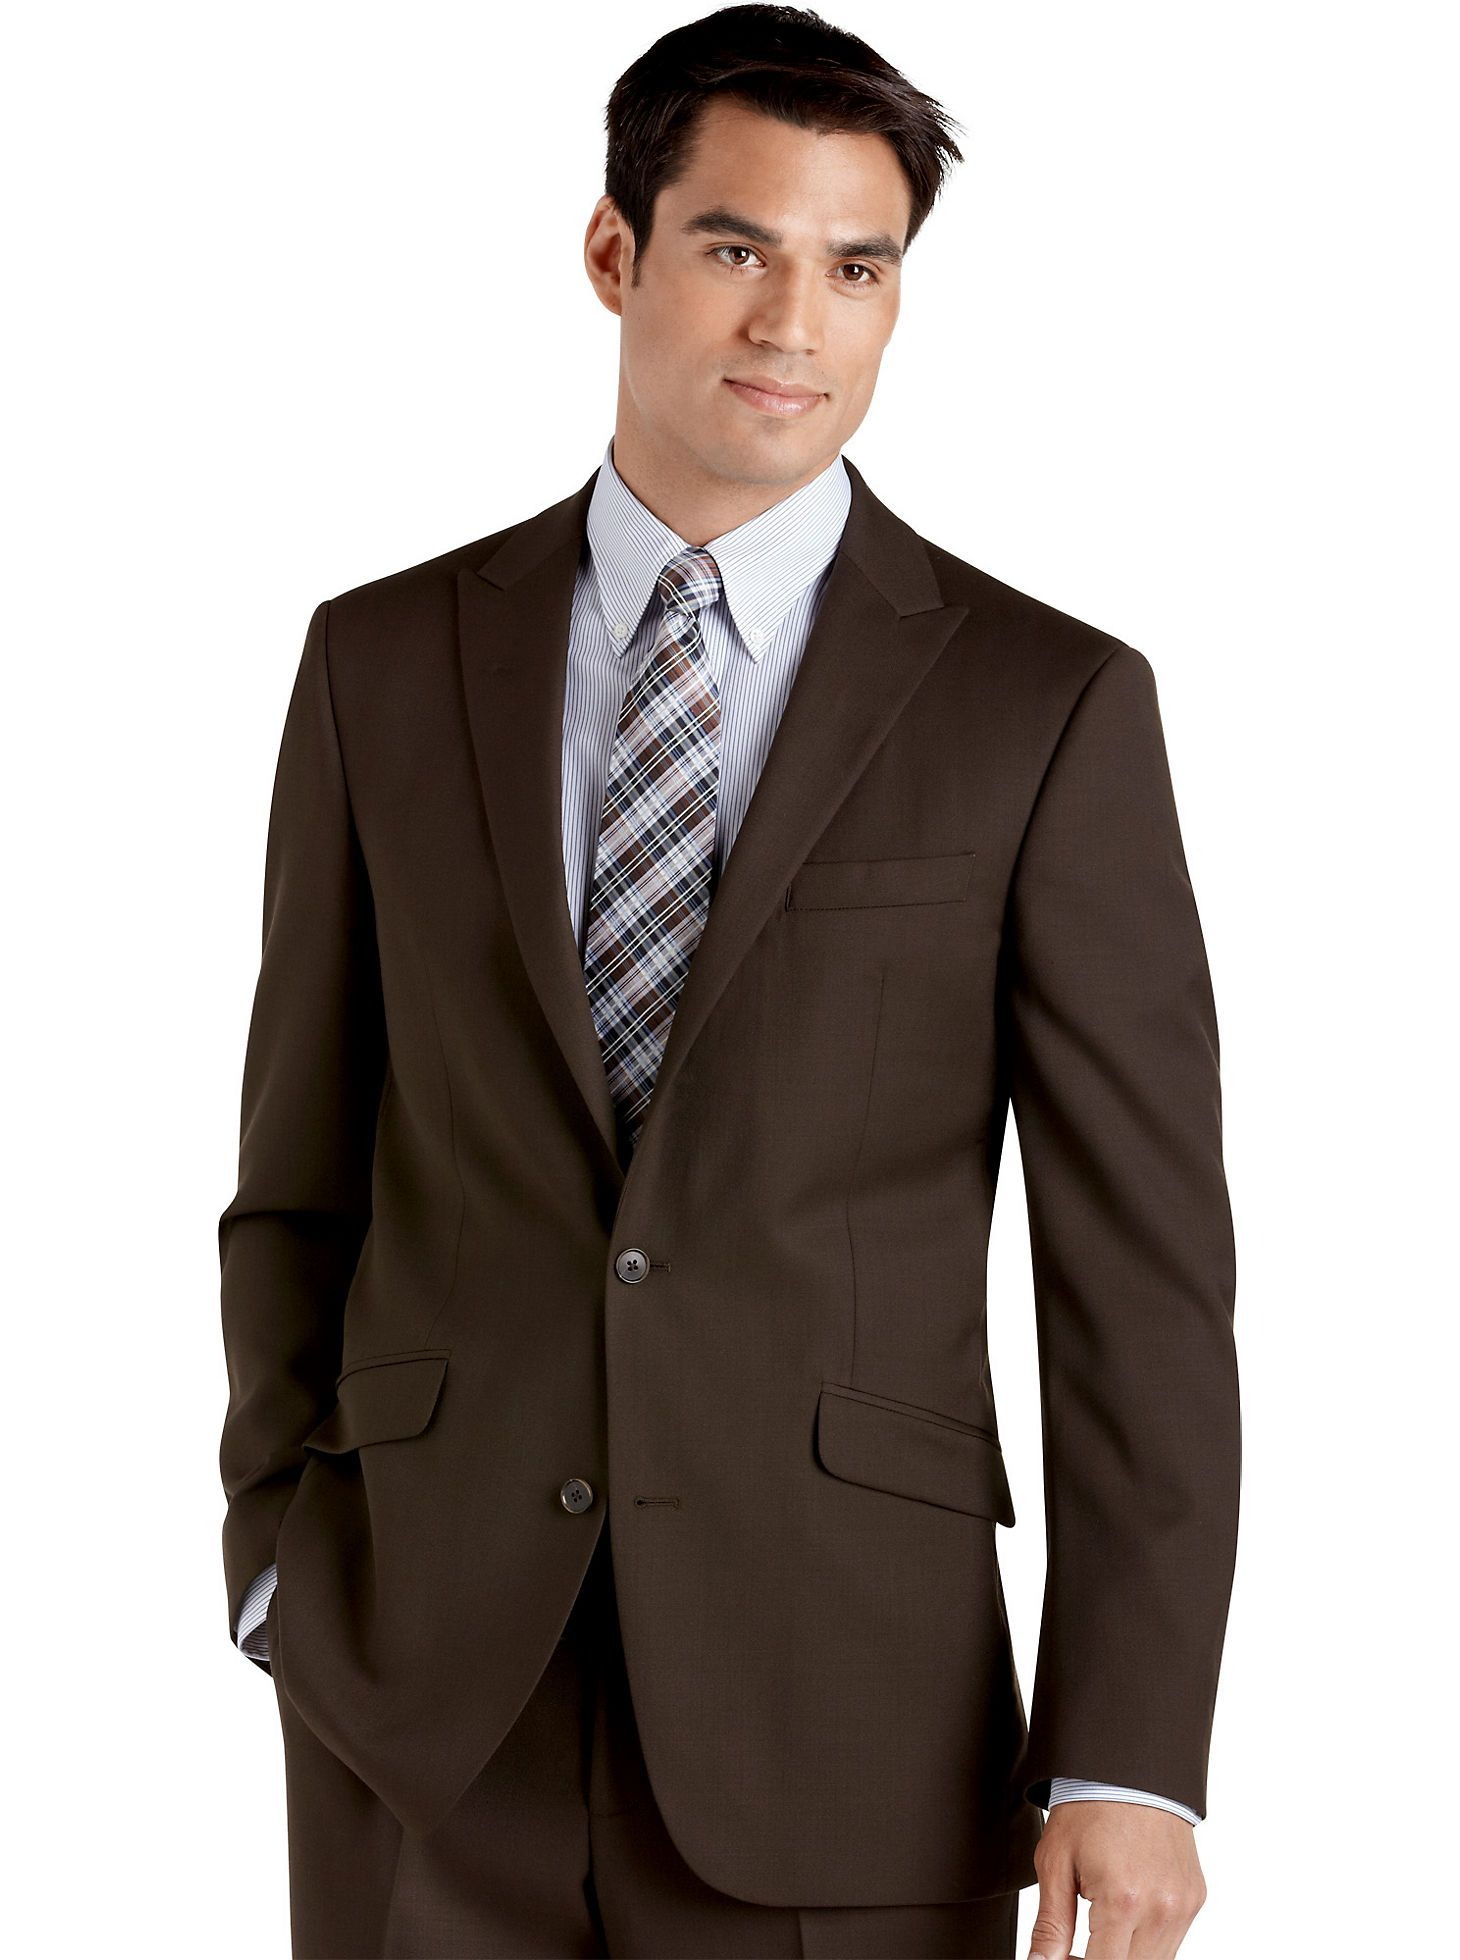 Men's Warehouse. in 2019 | Mens suits, Slim fit suits, Brown